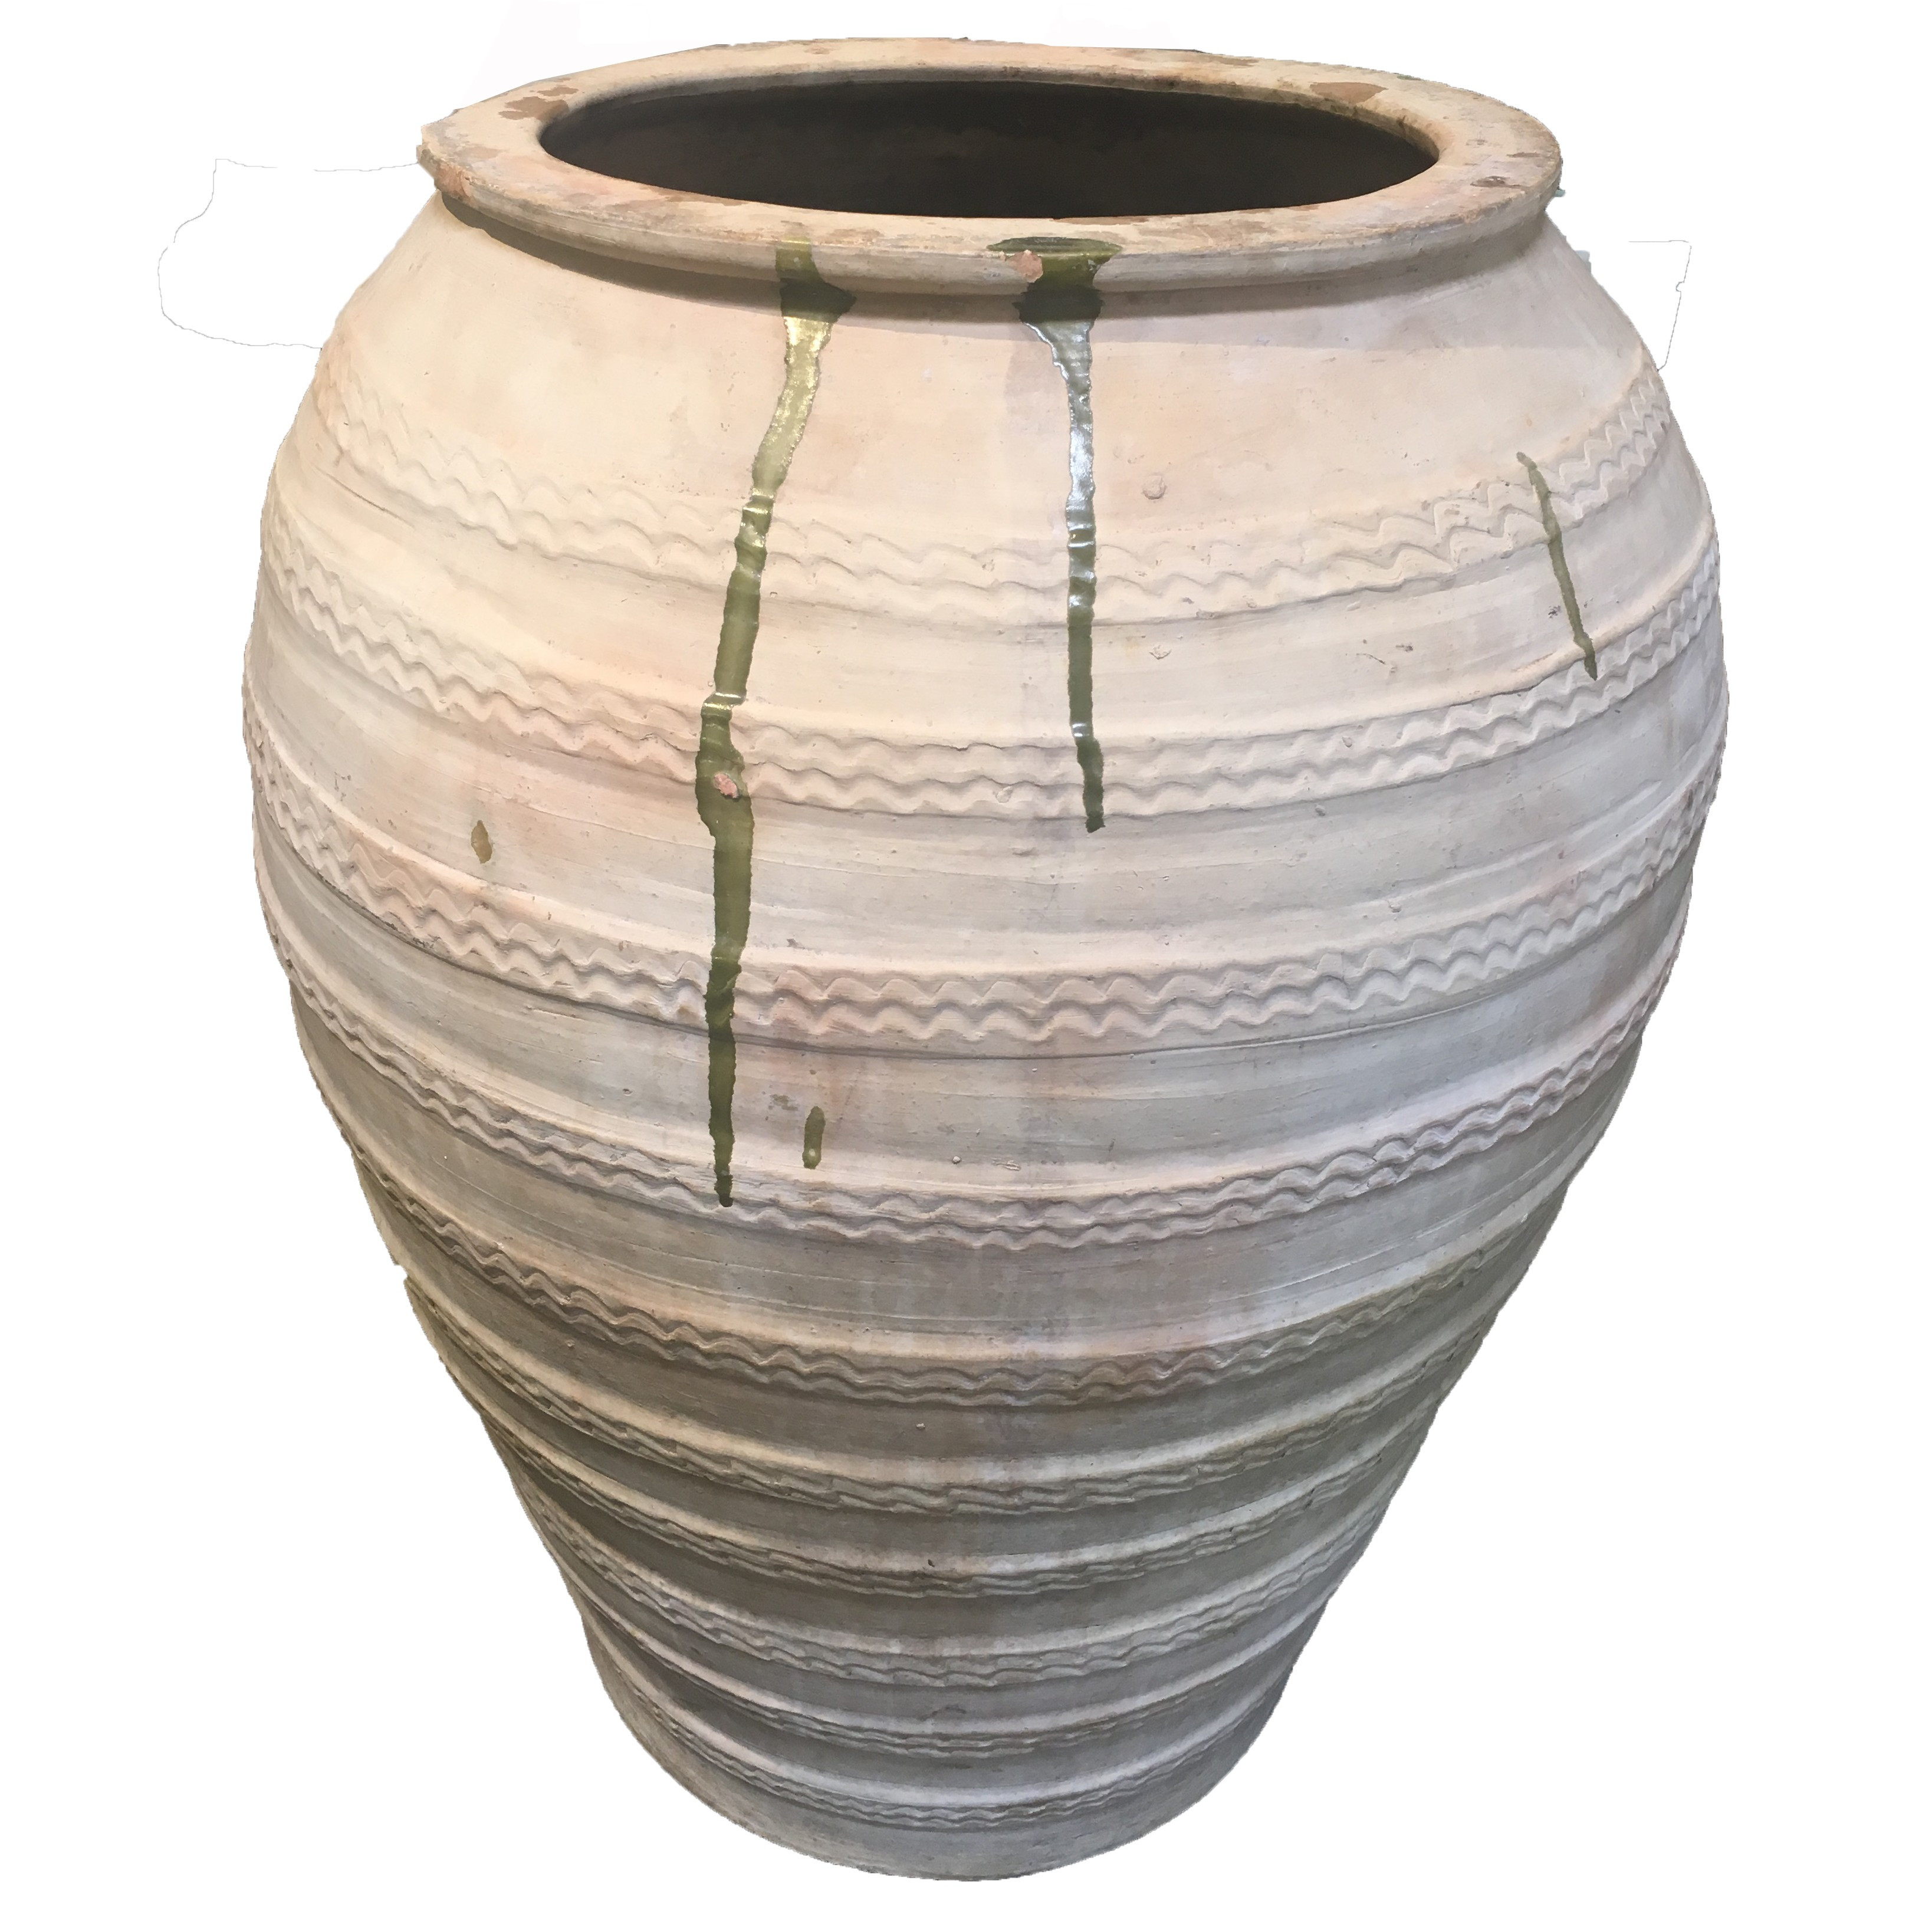 ceramic bud vases wholesale of extra large garden planters lovely home design outdoor planters inside extra large garden planters new antique extra spanish ceramic oil jar of extra large gar